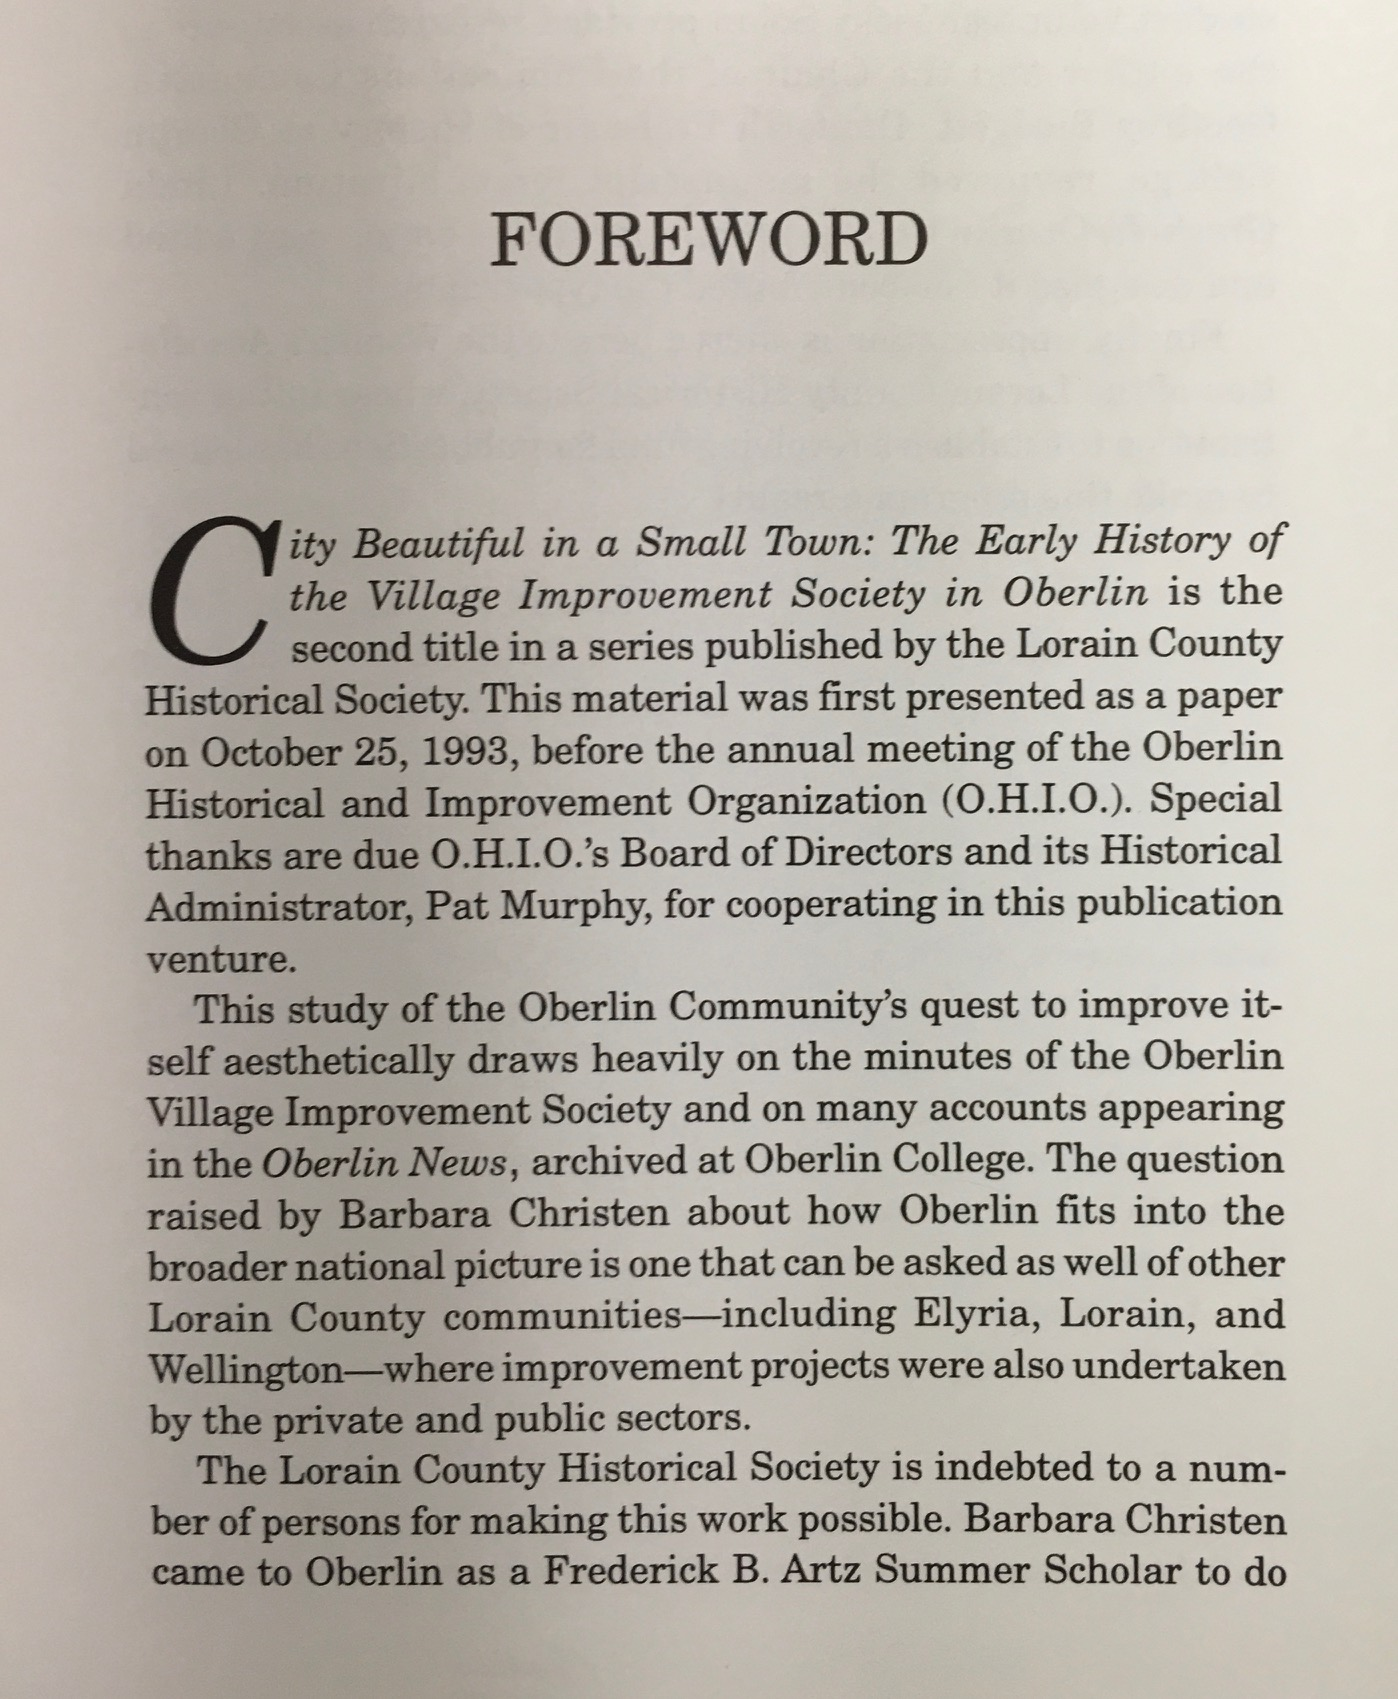 Image for City Beautiful In a Small town: The early history of the Village Improvement Society in Oberlin [Ohio]